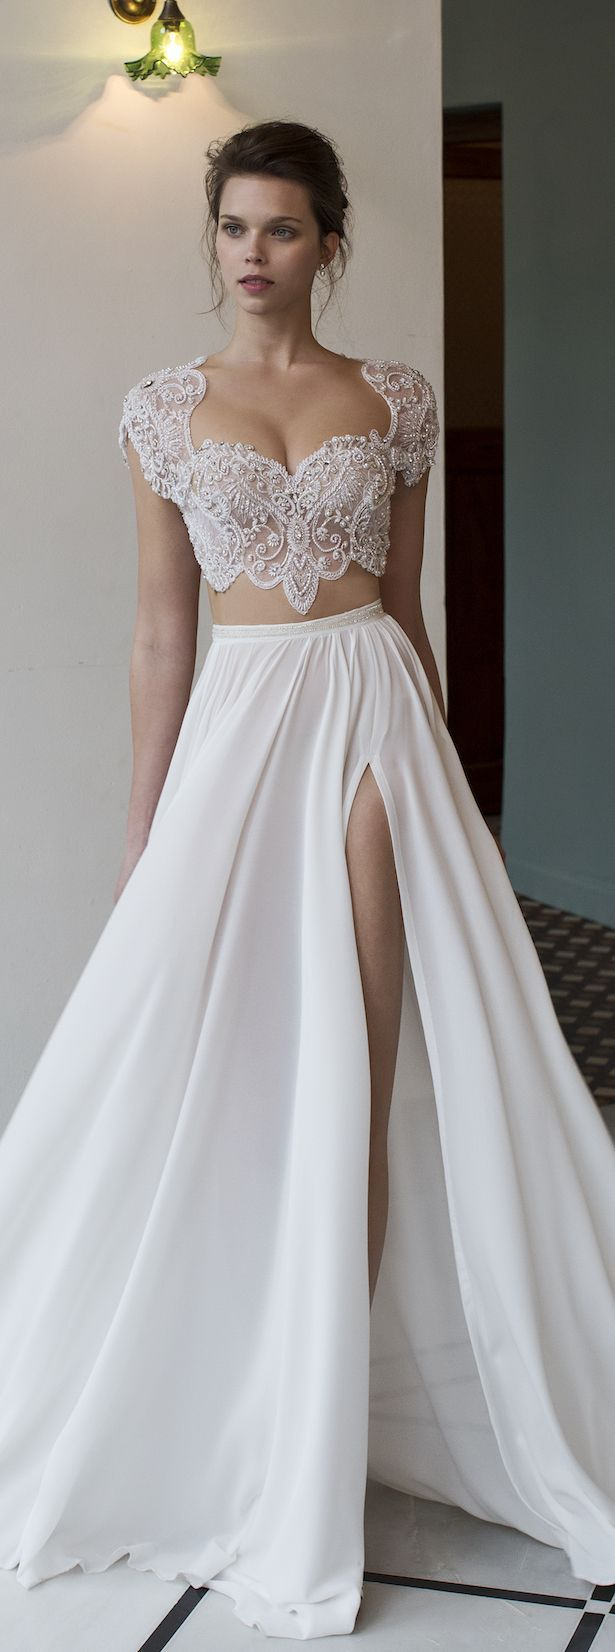 Sexy two-piece bridal gown with lace top   Bridal Trends: Two- Piece ...